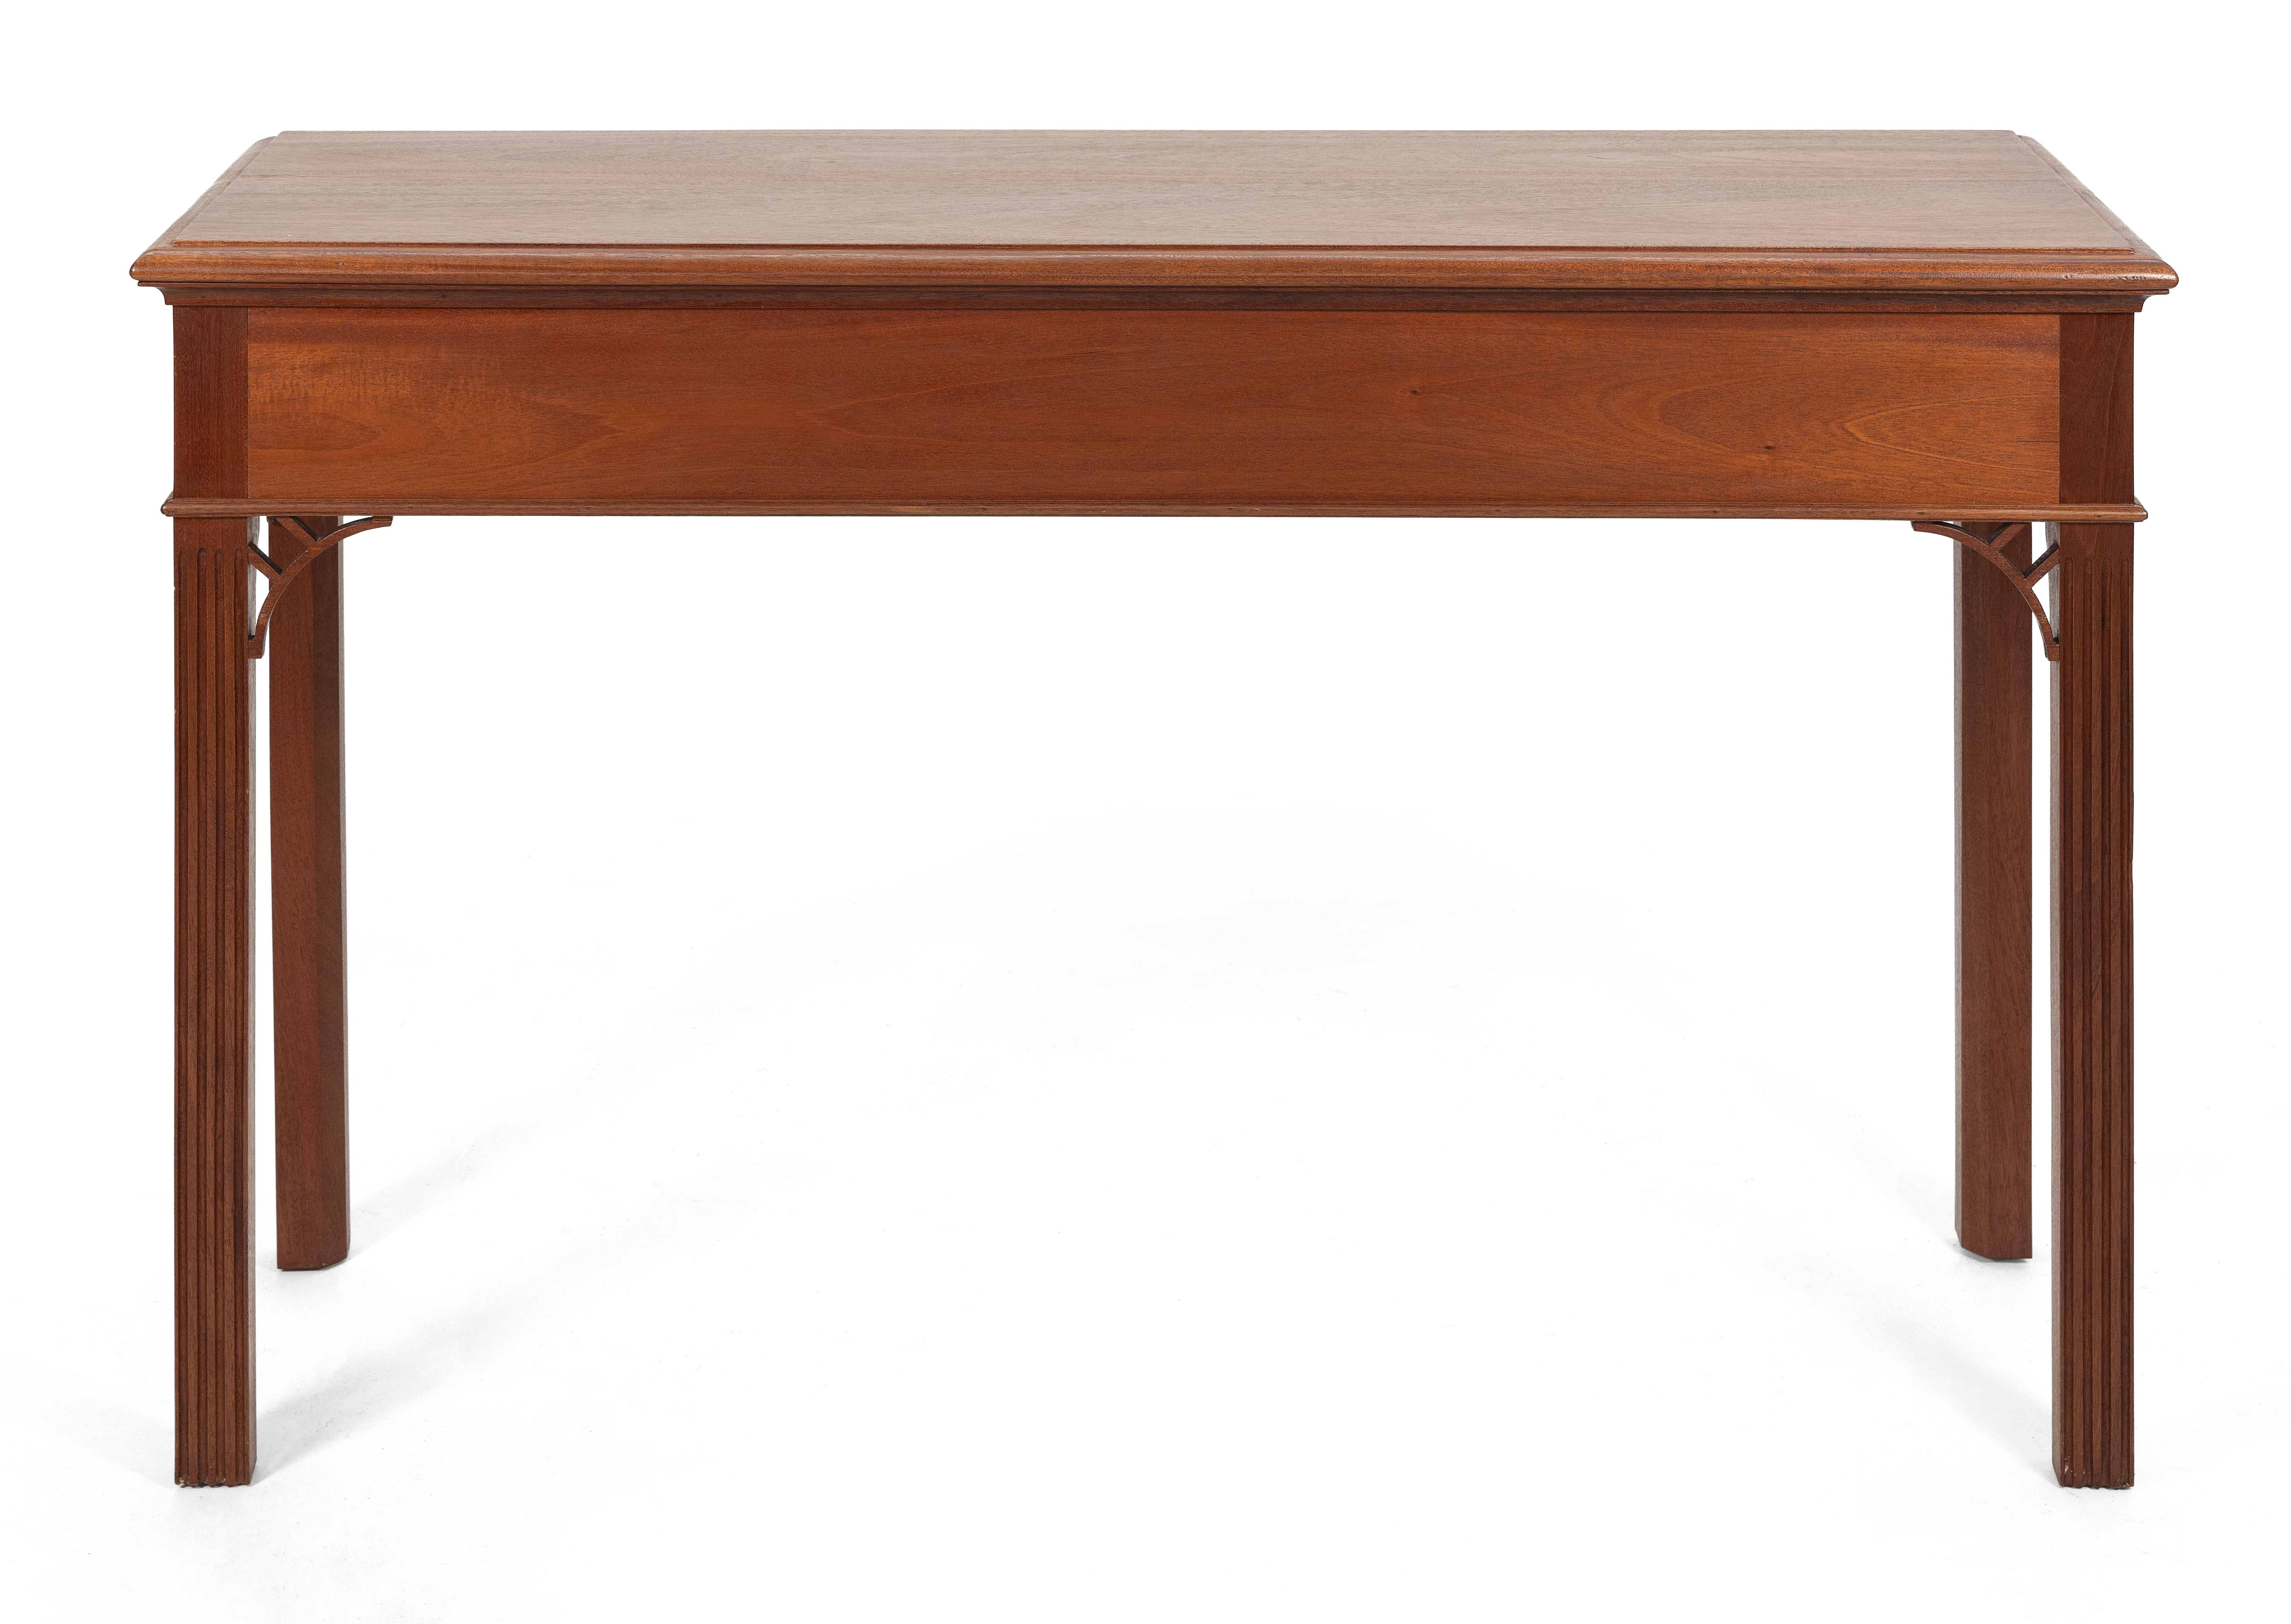 """CHIPPENDALE-STYLE CONSOLE TABLE 20th Century Height 34.25"""". Width 54.25"""". Depth 18.25""""."""